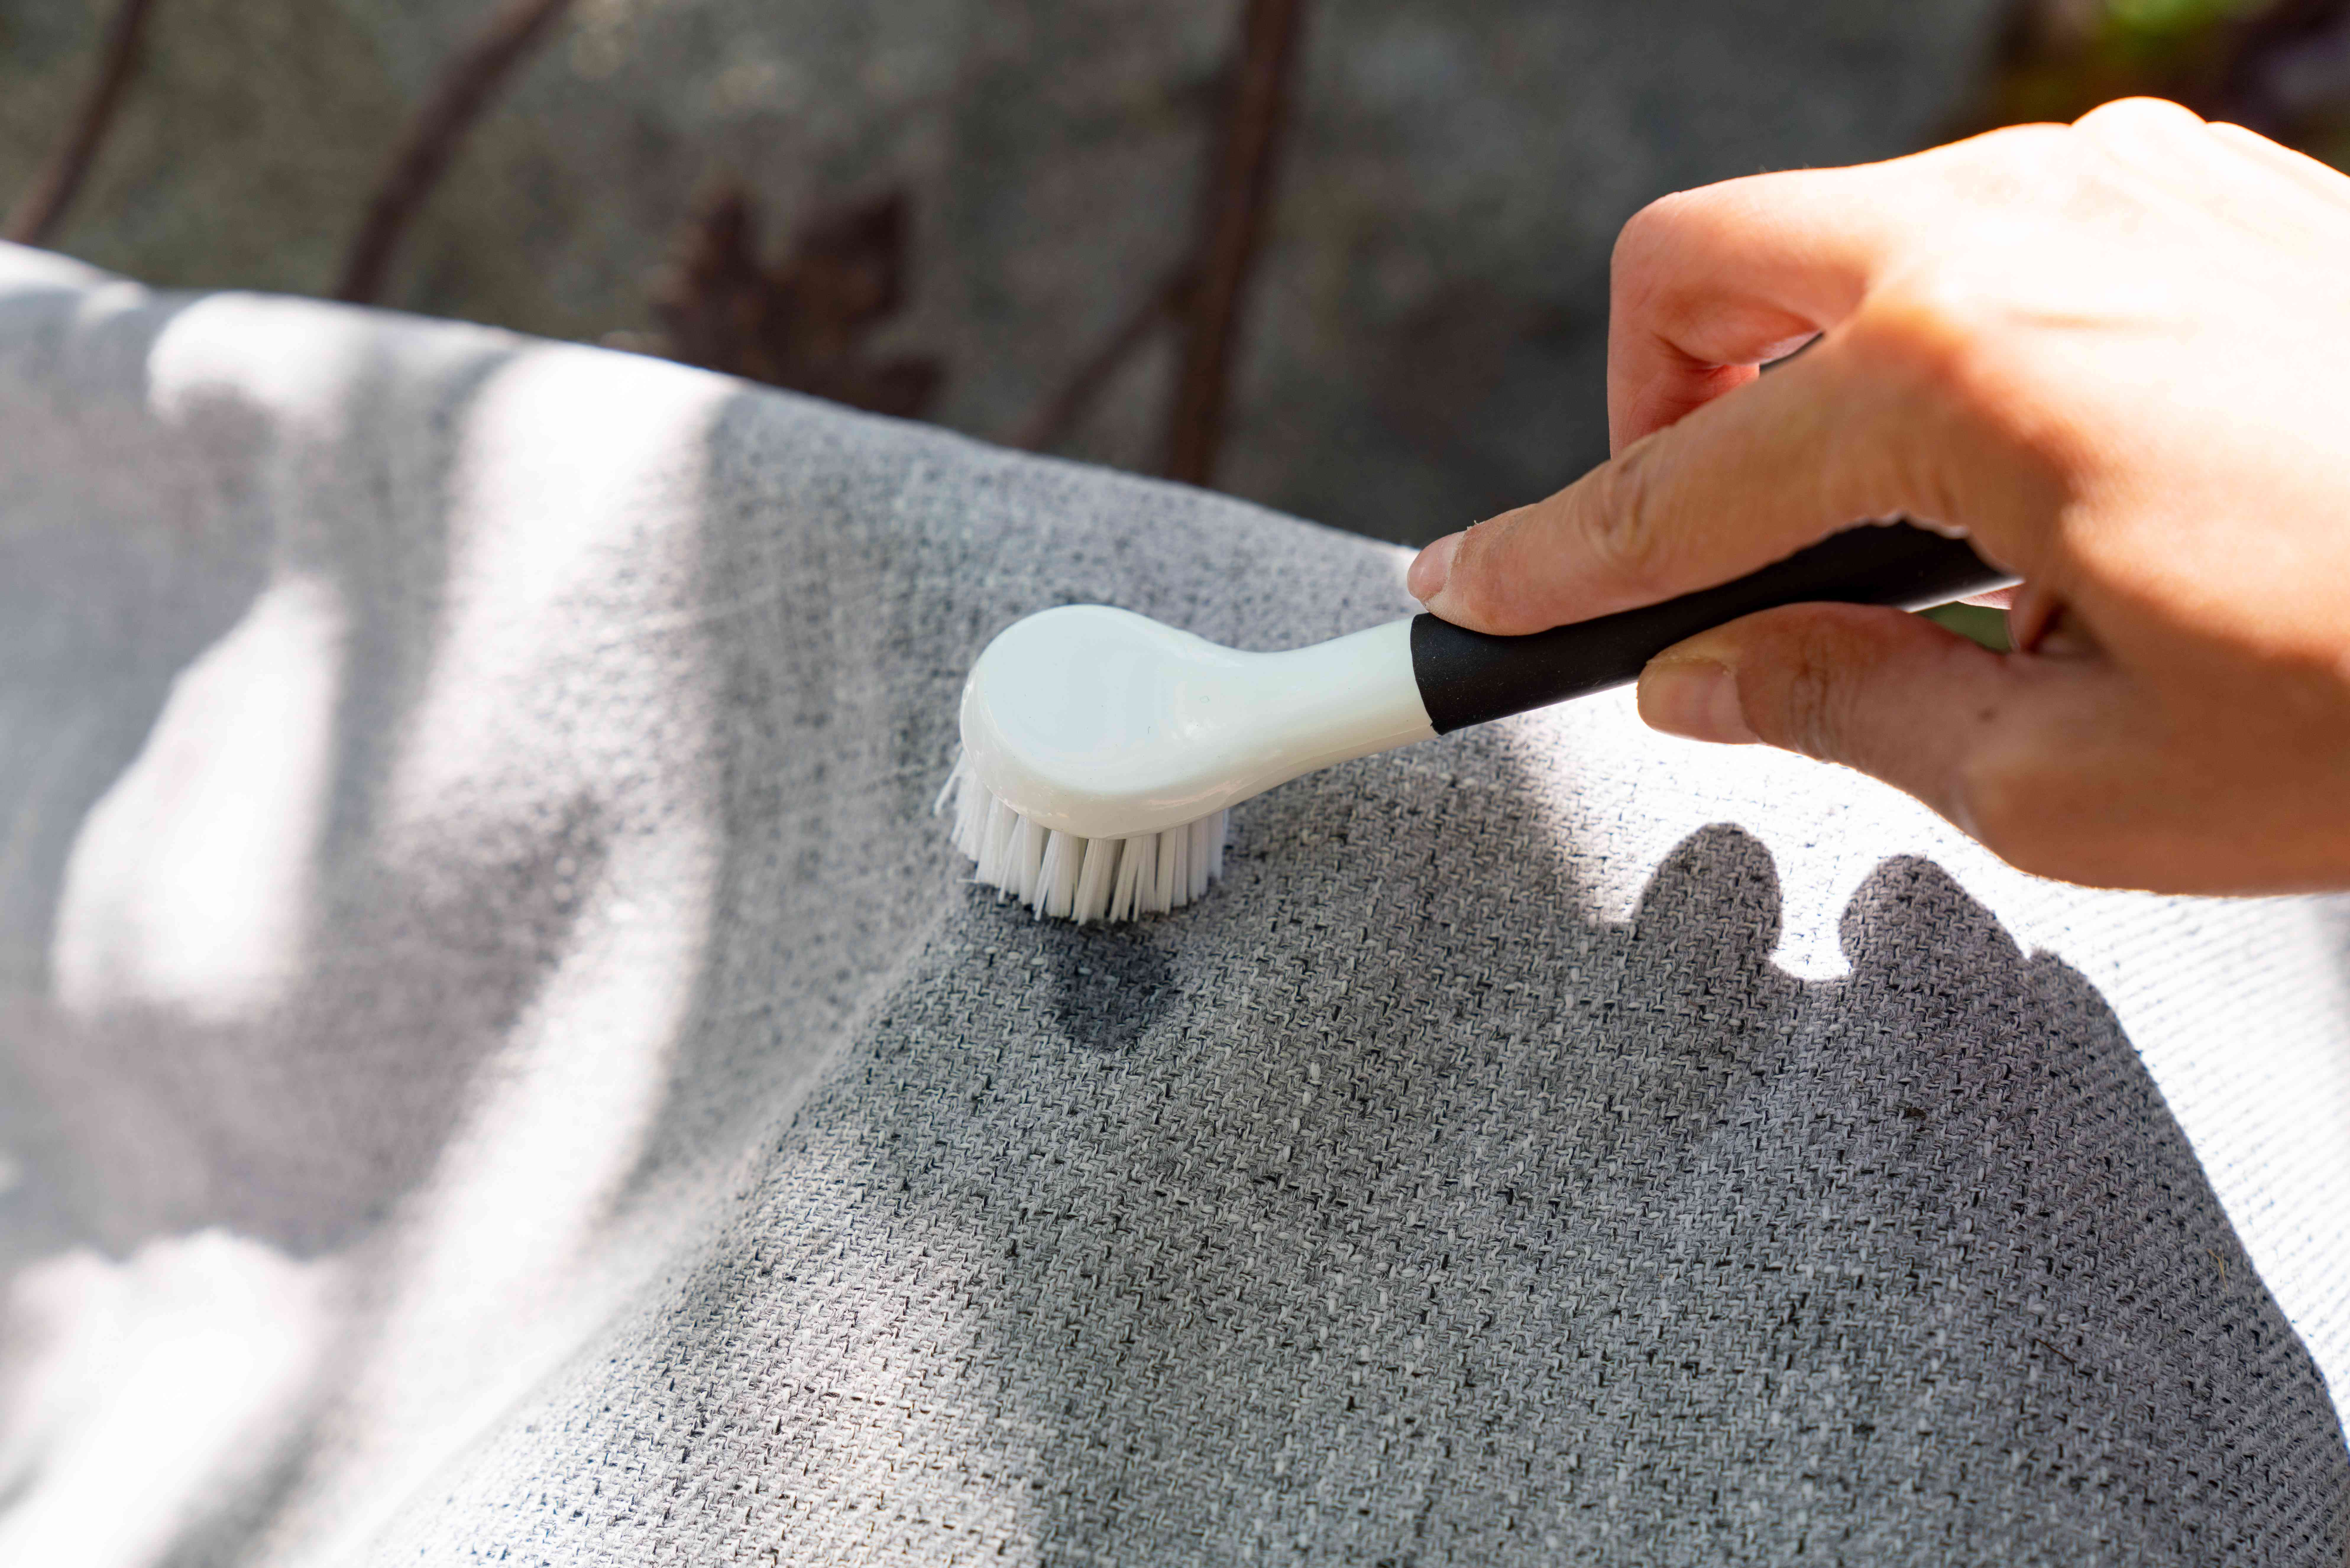 Heavy duty laundry detergent scrubbed into outdoor fabric furniture with soft-bristled brush